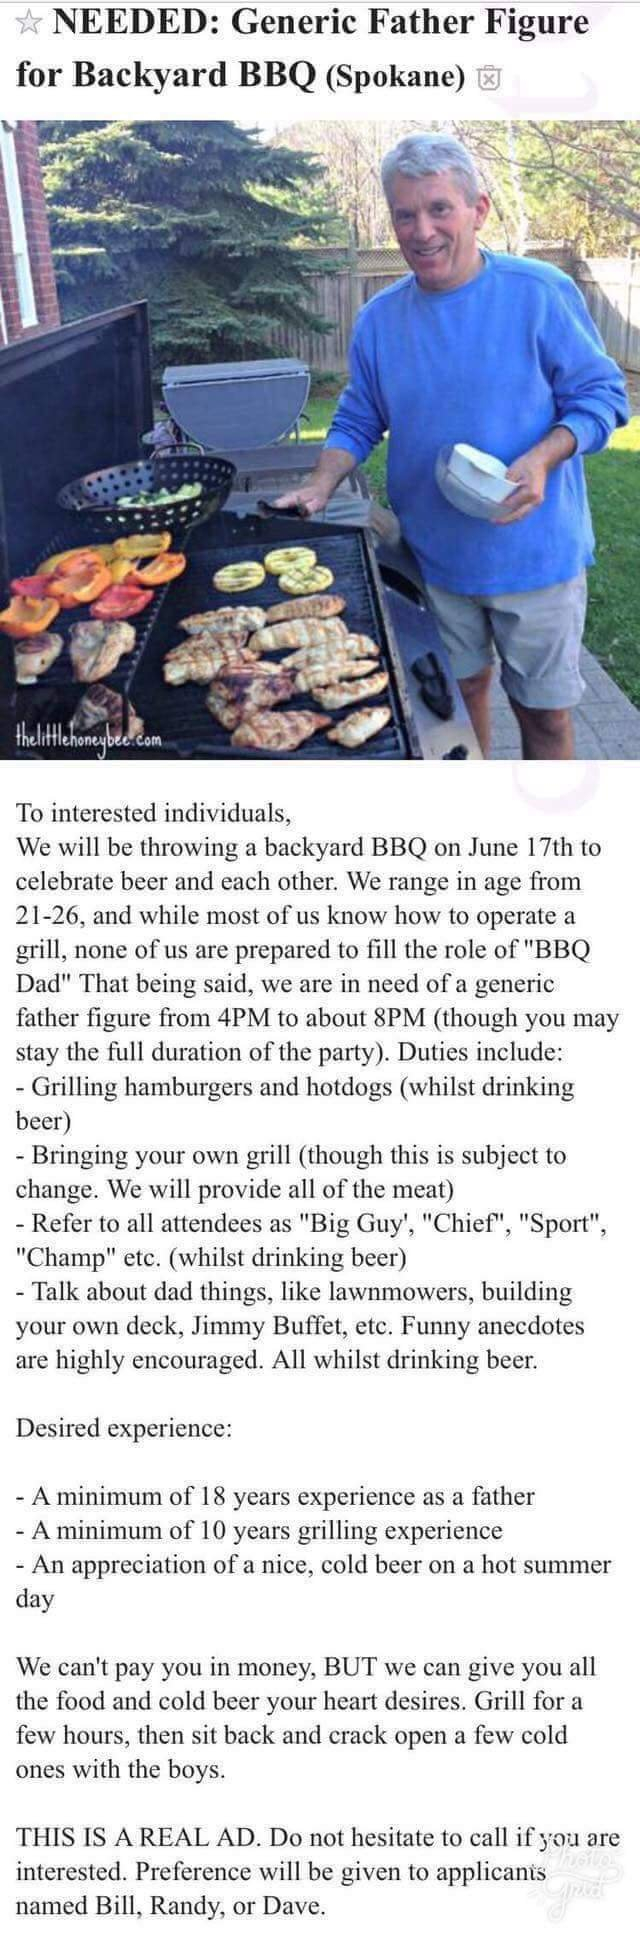 craigslist ad looking for a dad to grill Dad10